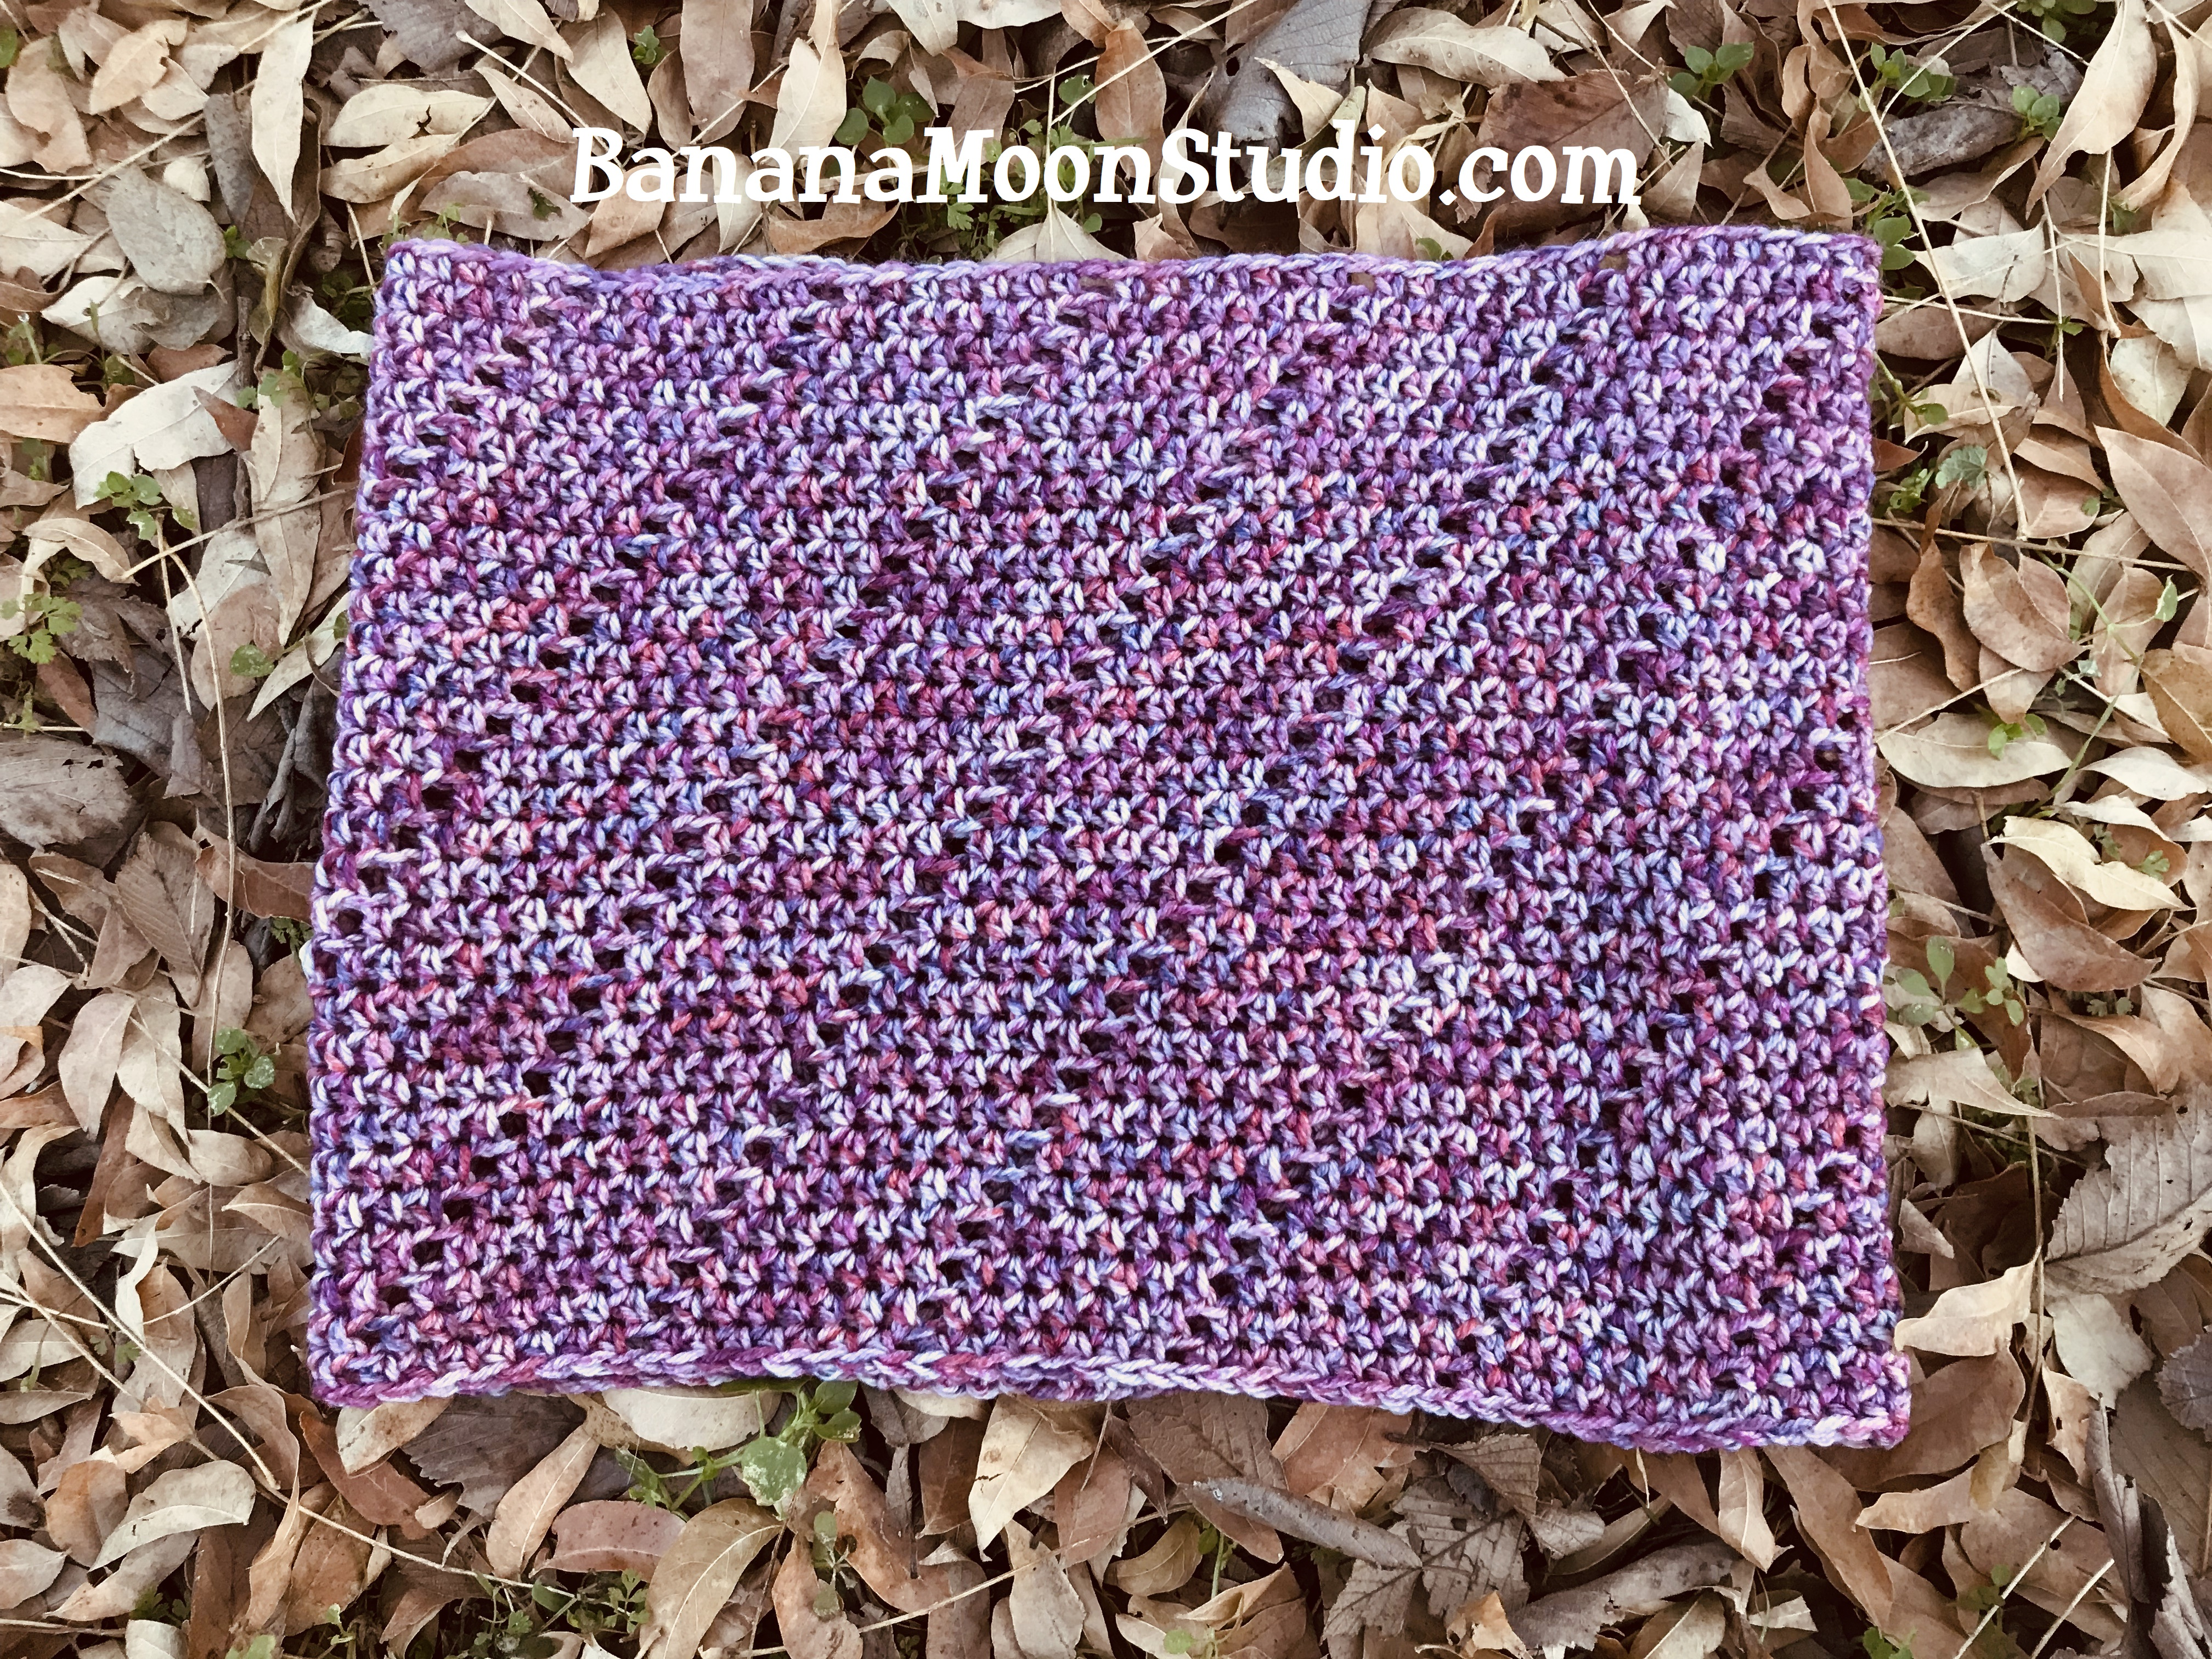 Free crochet patterns for matching hat and cowl, by April Garwood of Banana Moon Studio